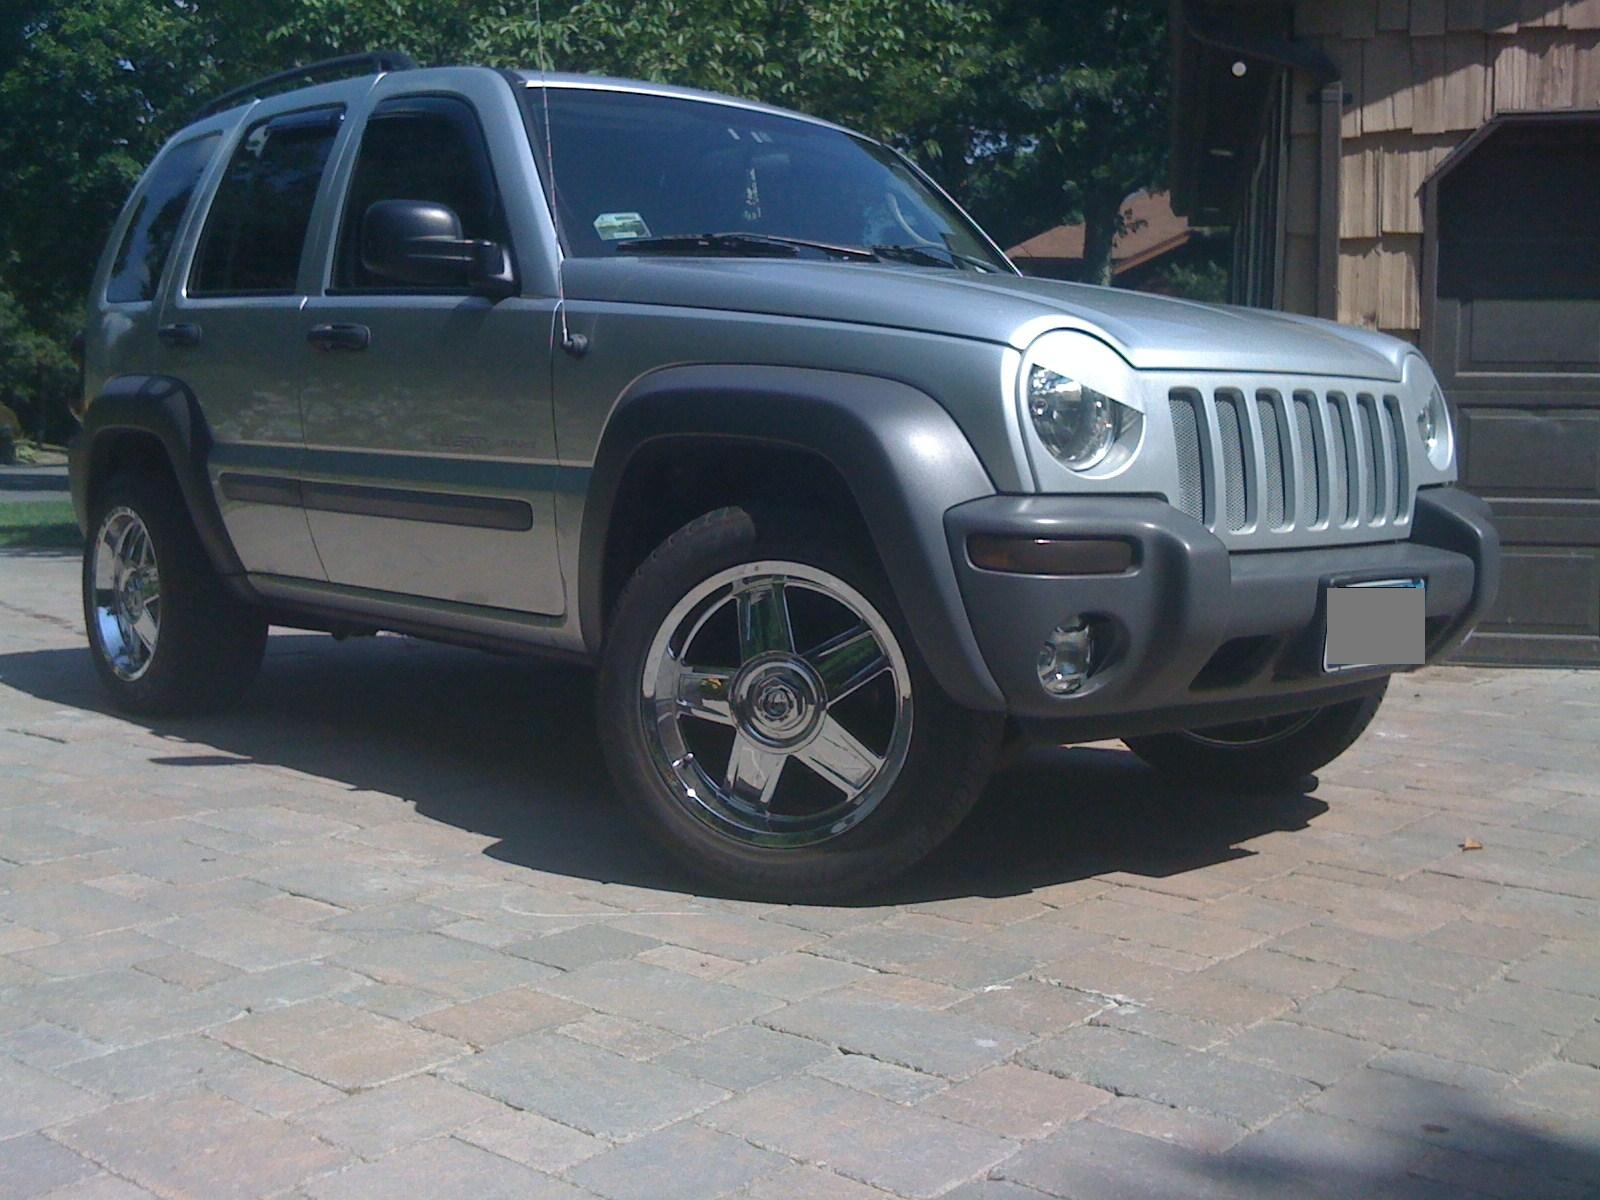 2005 Jeep Liberty Angry Eyes